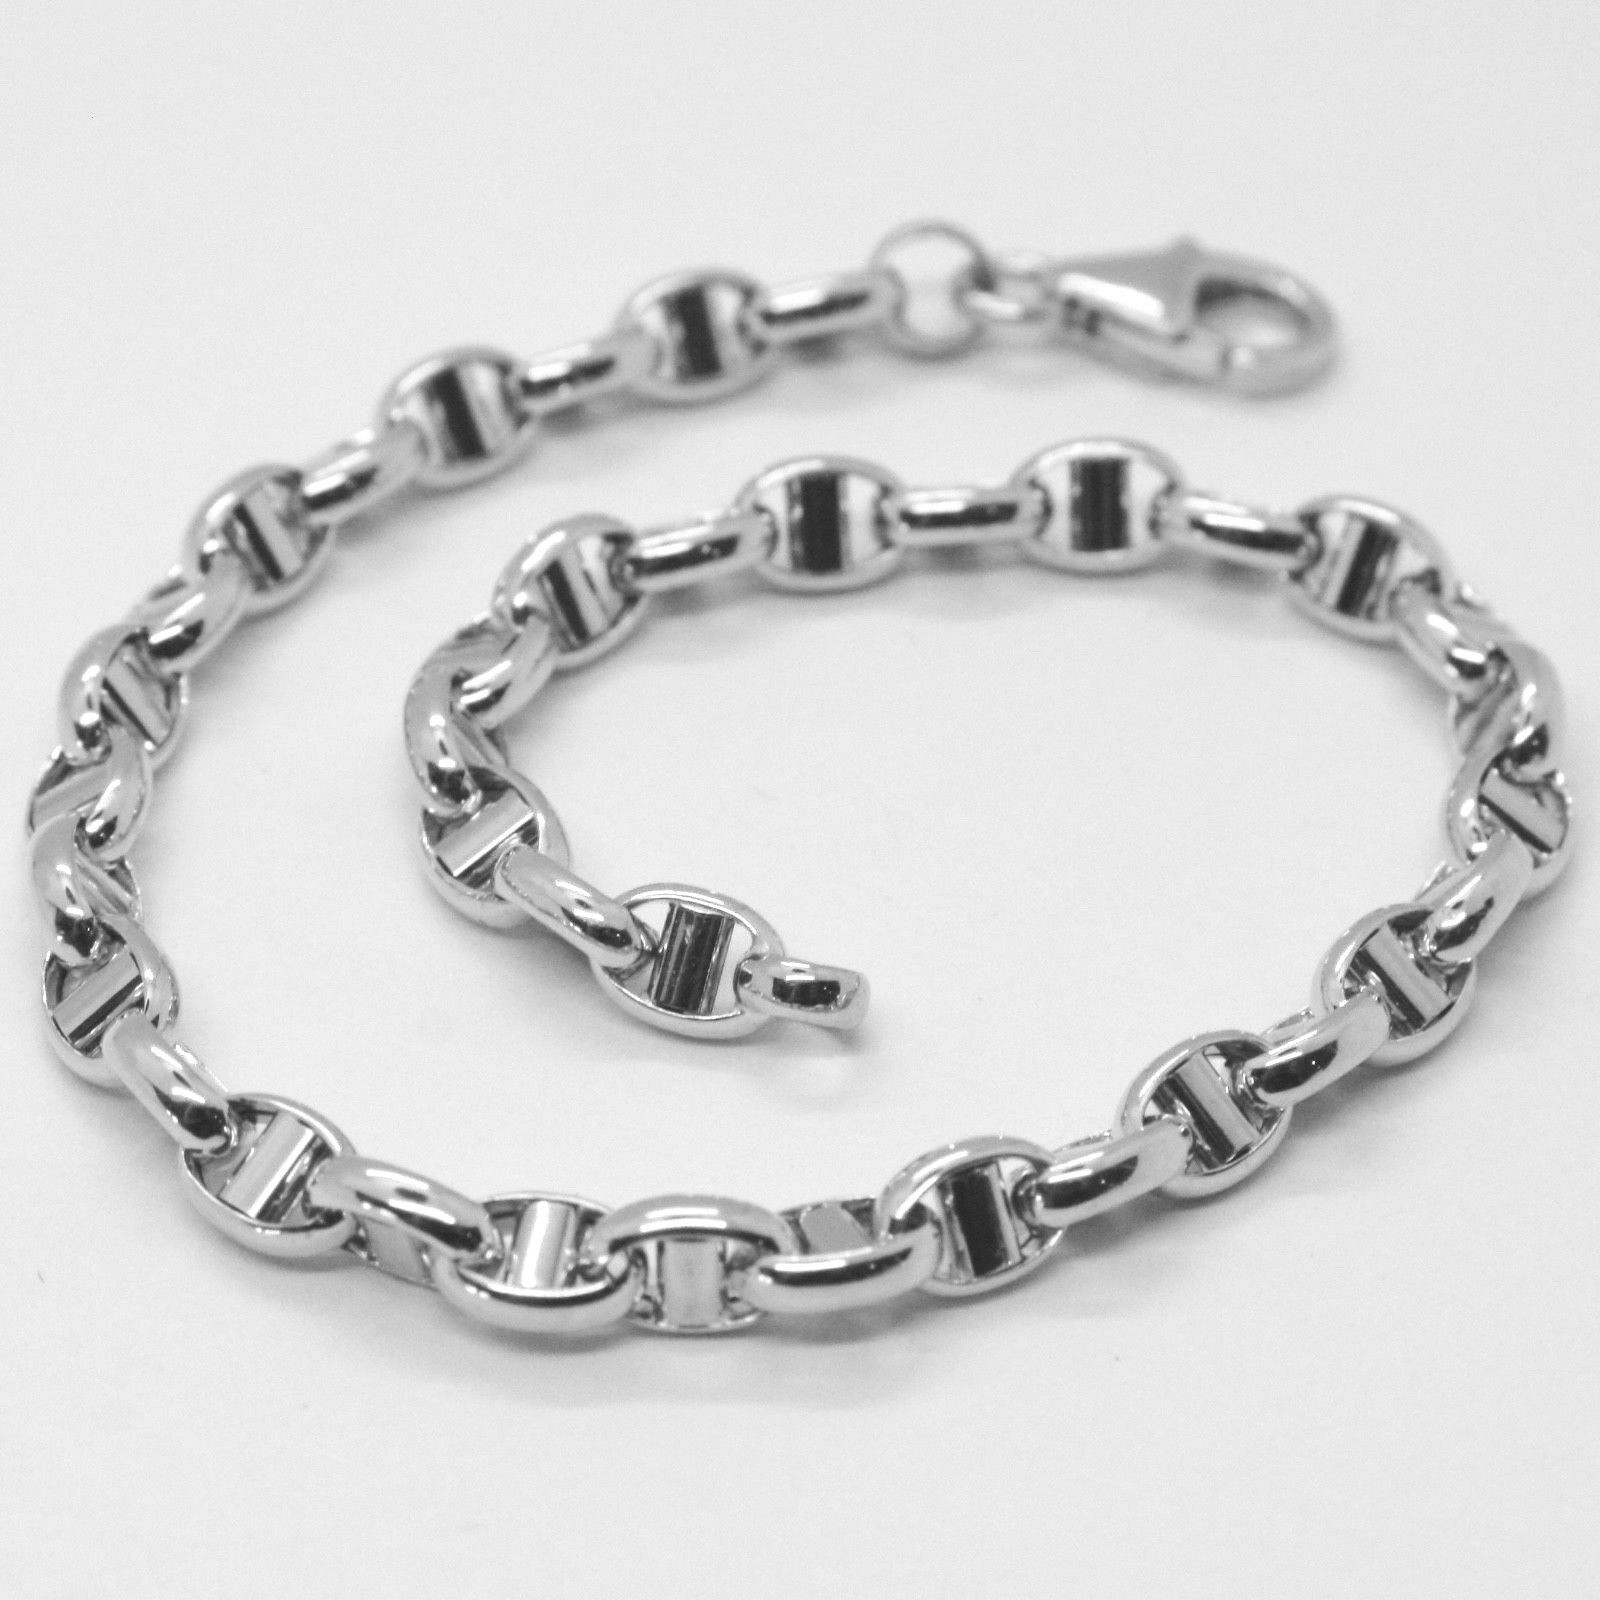 18K WHITE GOLD 4 MM OVAL NAVY MARINER BRACELET 7.80 INCHES, 21 CM, ITALY MADE